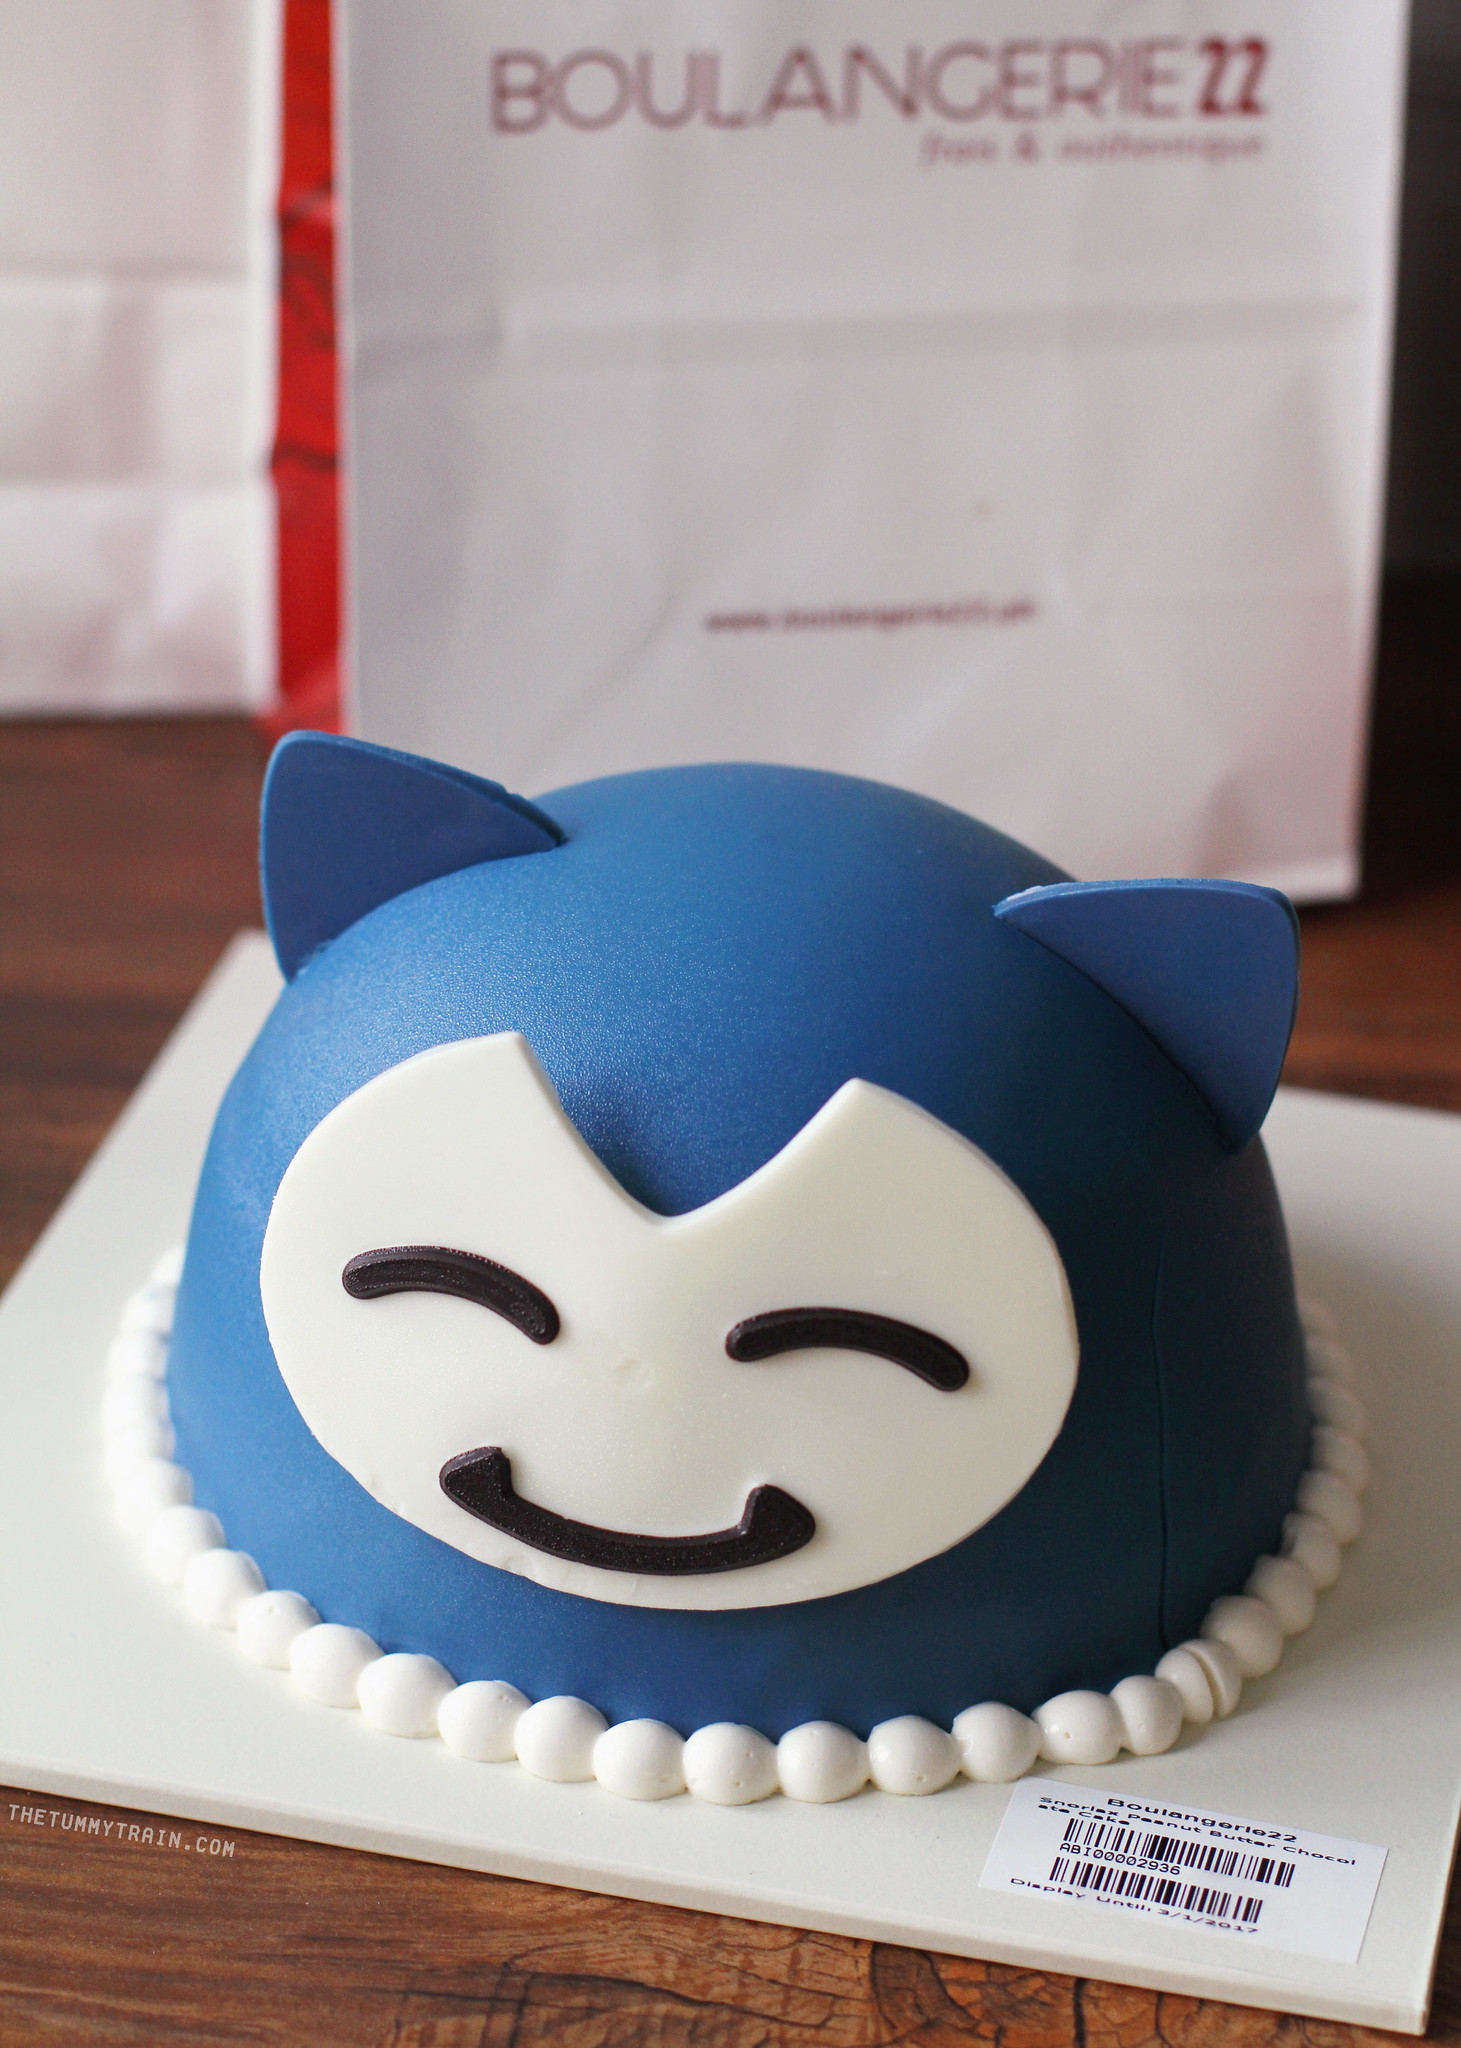 32922368630 ddf2f099f3 k - Fuel your Pokemon Go craze with Boulangerie22 Pokemon Cakes